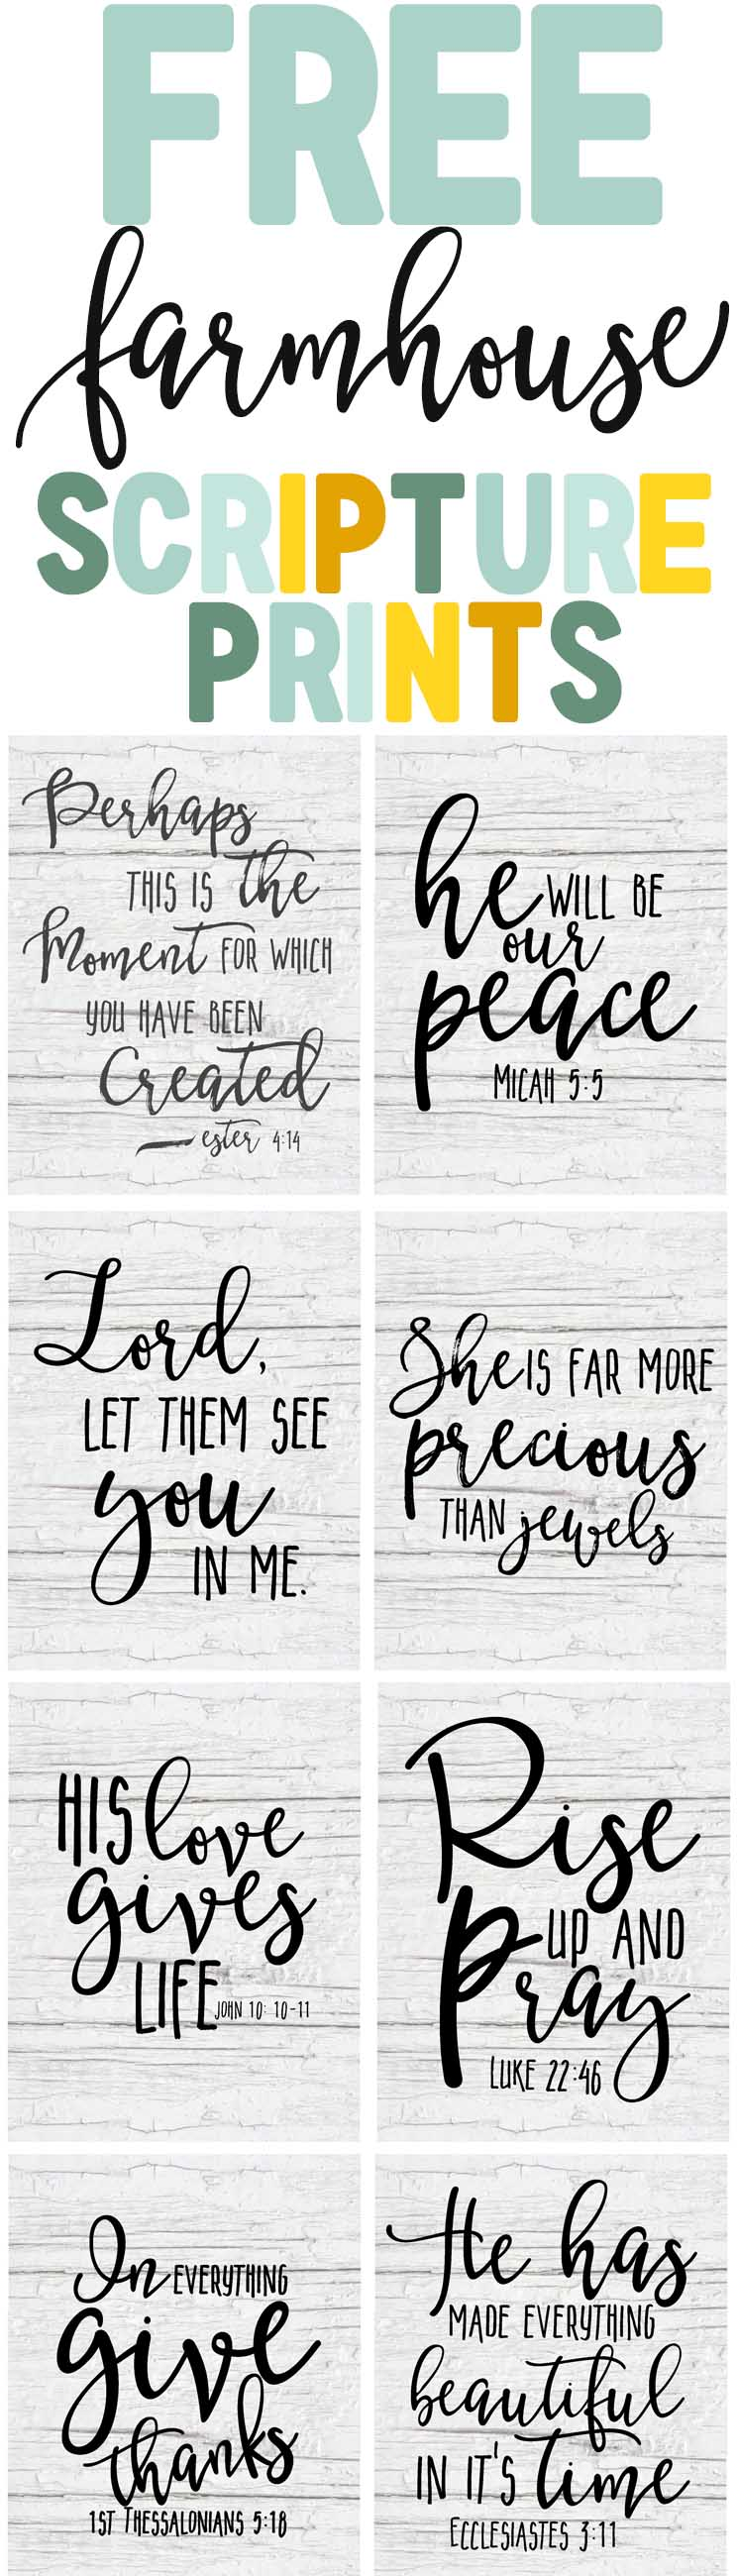 photo regarding Free Printable Scripture Verses titled Absolutely free Farmhouse Scripture Printables - The Mountain Feeling Cottage